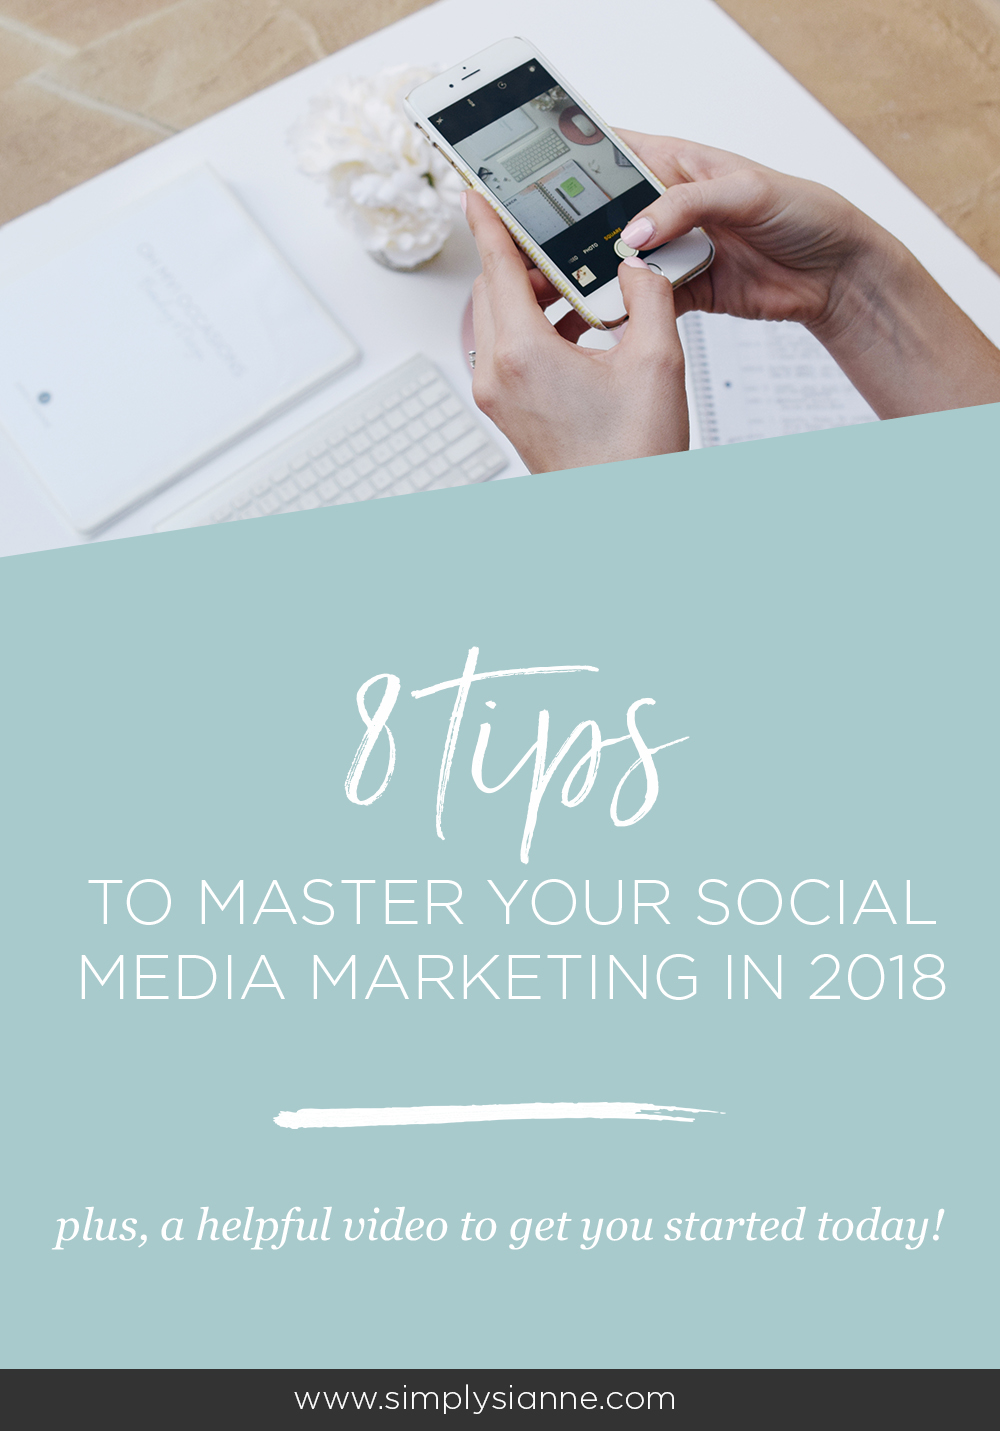 If the new changes on Facebook and Instagram have you wondering how you'll market your creative business in 2018, don't worry! Leverage your social media marketing with these 8 tips!